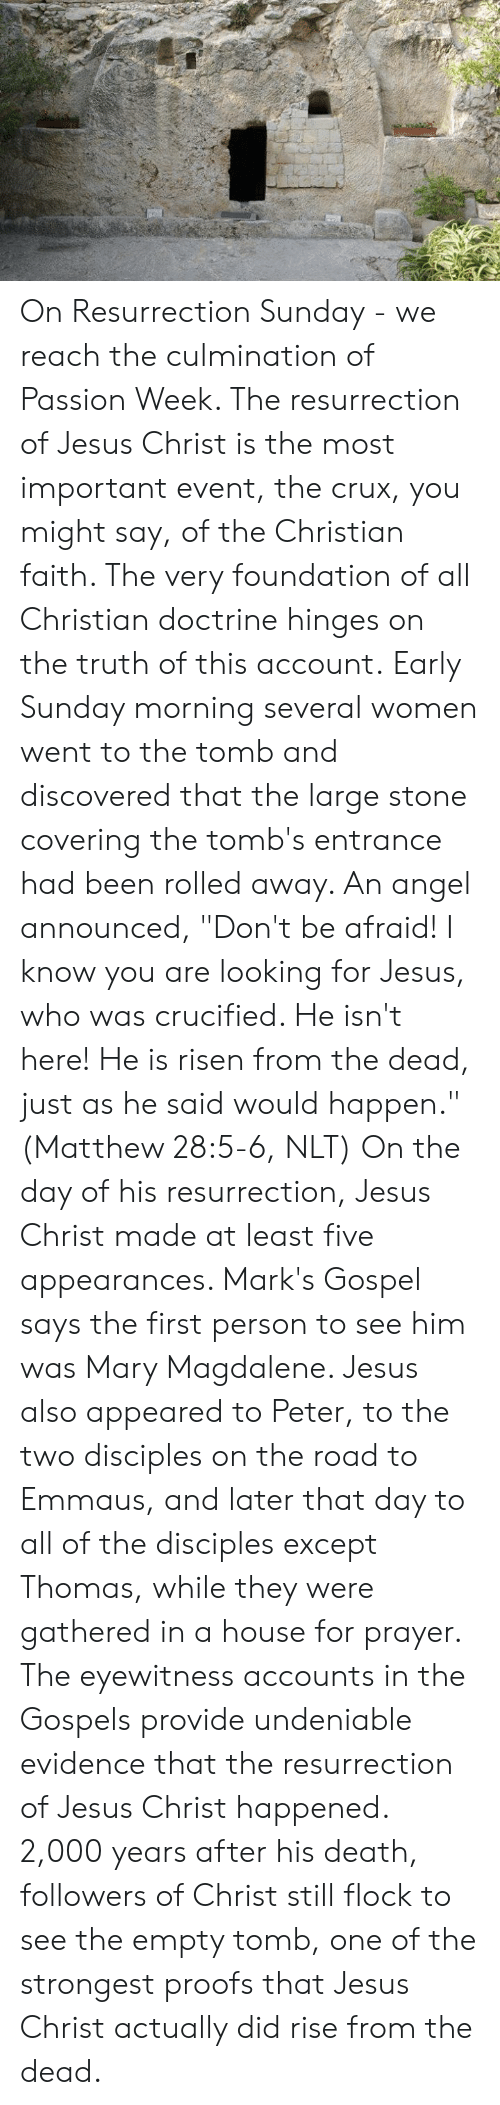 "Jesus, Memes, and Angel: On Resurrection Sunday - we reach the culmination of Passion Week. The resurrection of Jesus Christ is the most important event, the crux, you might say, of the Christian faith. The very foundation of all Christian doctrine hinges on the truth of this account.  Early Sunday morning several women went to the tomb and discovered that the large stone covering the tomb's entrance had been rolled away. An angel announced, ""Don't be afraid! I know you are looking for Jesus, who was crucified. He isn't here! He is risen from the dead, just as he said would happen."" (Matthew 28:5-6, NLT)  On the day of his resurrection, Jesus Christ made at least five appearances. Mark's Gospel says the first person to see him was Mary Magdalene. Jesus also appeared to Peter, to the two disciples on the road to Emmaus, and later that day to all of the disciples except Thomas, while they were gathered in a house for prayer.  The eyewitness accounts in the Gospels provide undeniable evidence that the resurrection of Jesus Christ happened. 2,000 years after his death, followers of Christ still flock to see the empty tomb, one of the strongest proofs that Jesus Christ actually did rise from the dead."